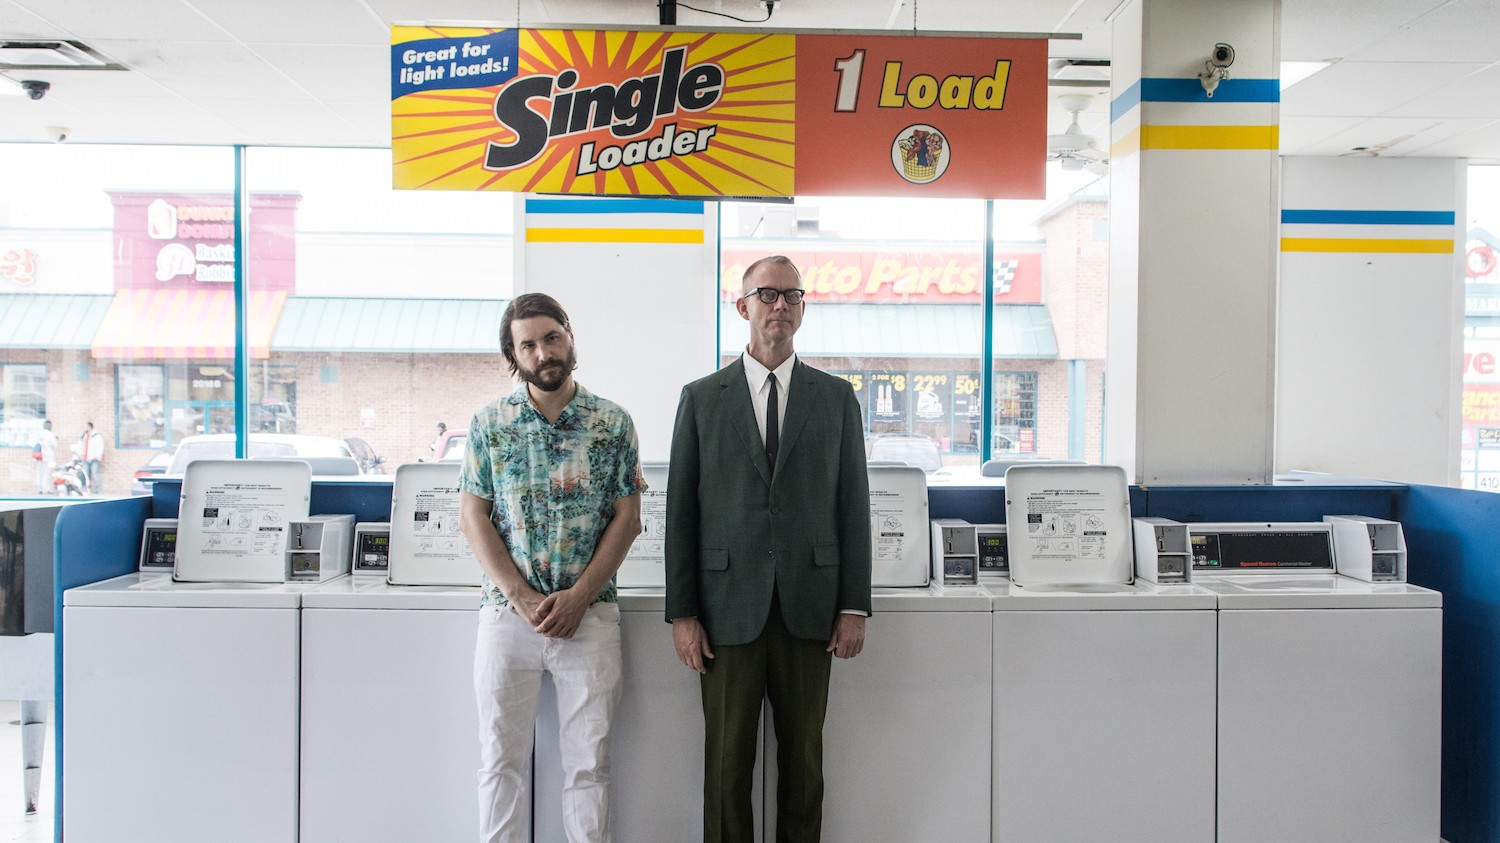 Matmos Used Their Washing Machine to Make Their Cleanest Album Yet